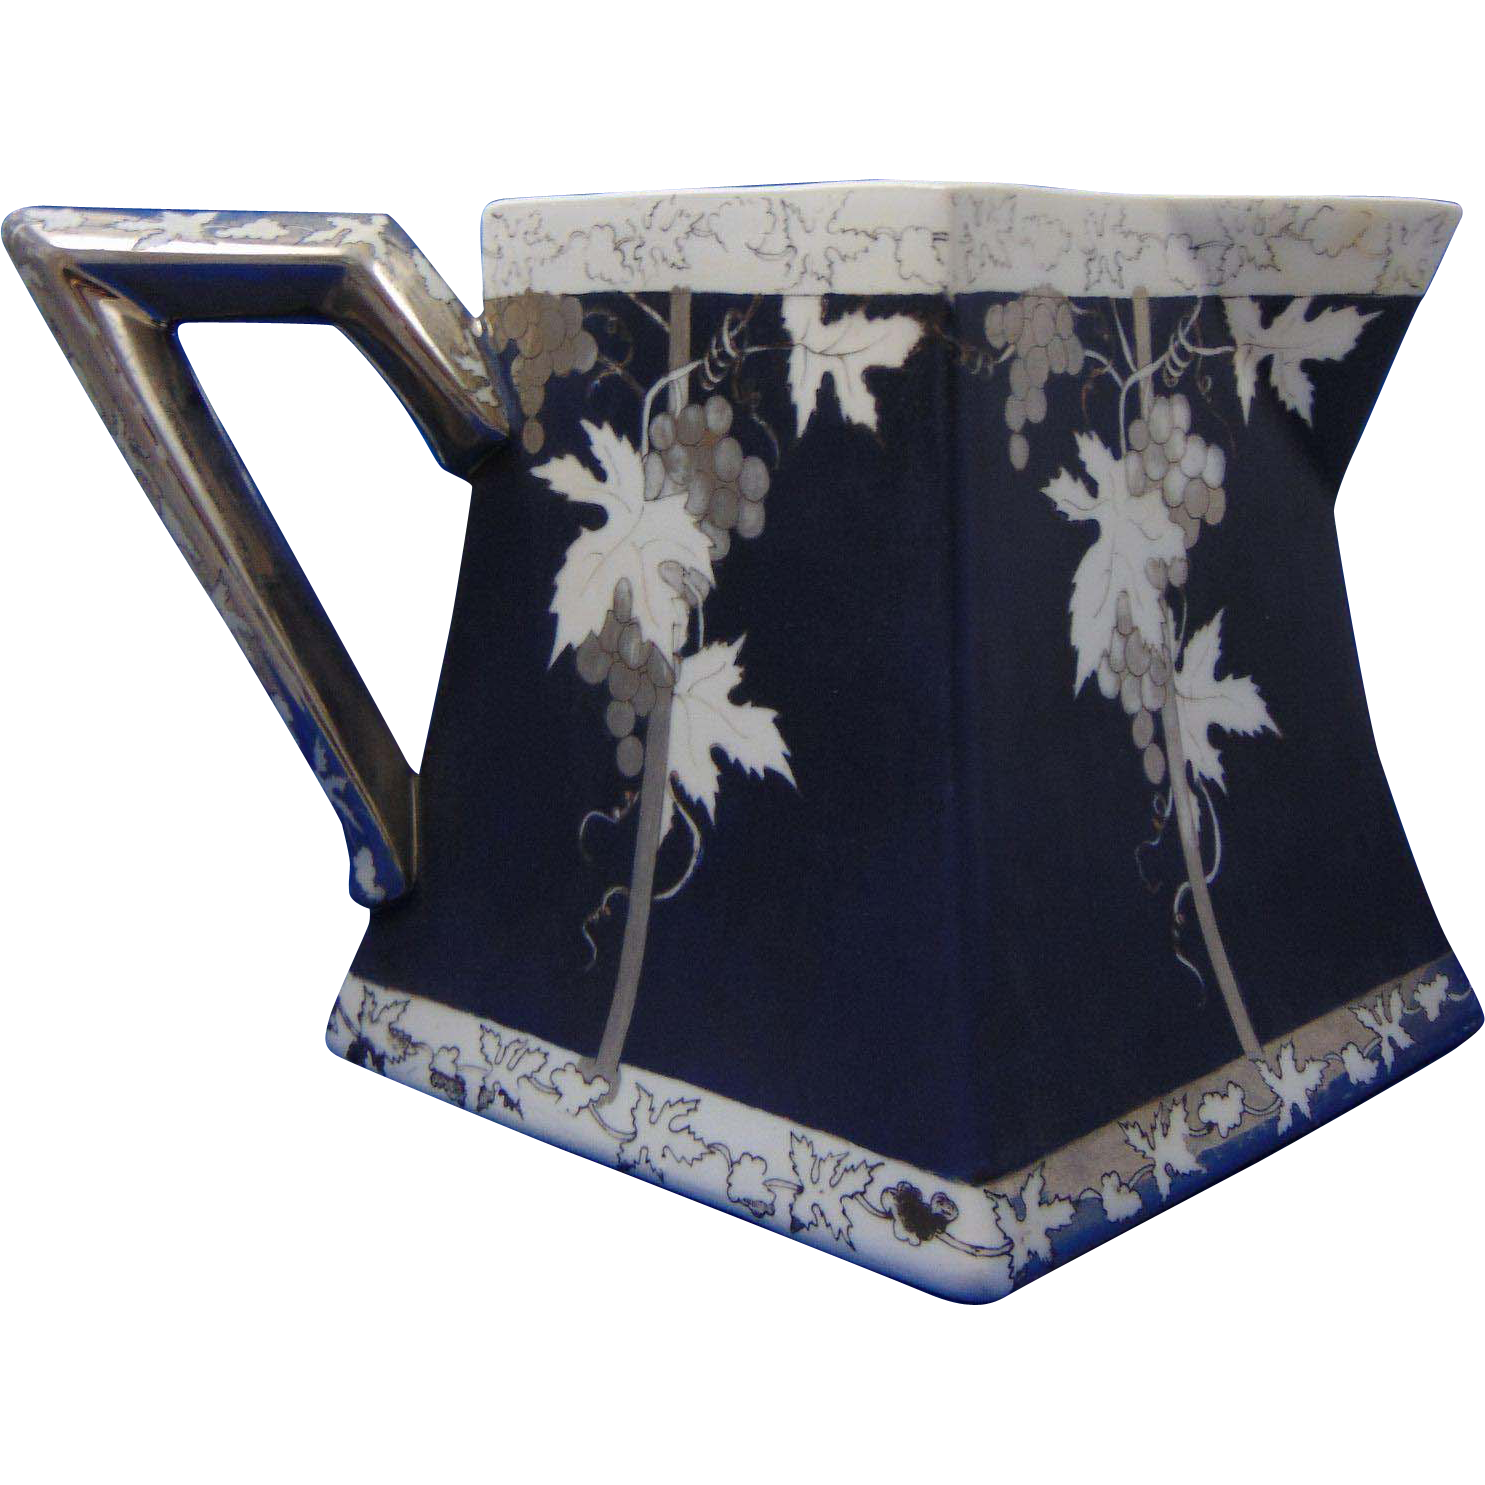 Delinieres & Co. (D&Co.) Limoges Arts & Crafts Blue, Platinum & White Grape Design Pitcher (c.1894-1910)